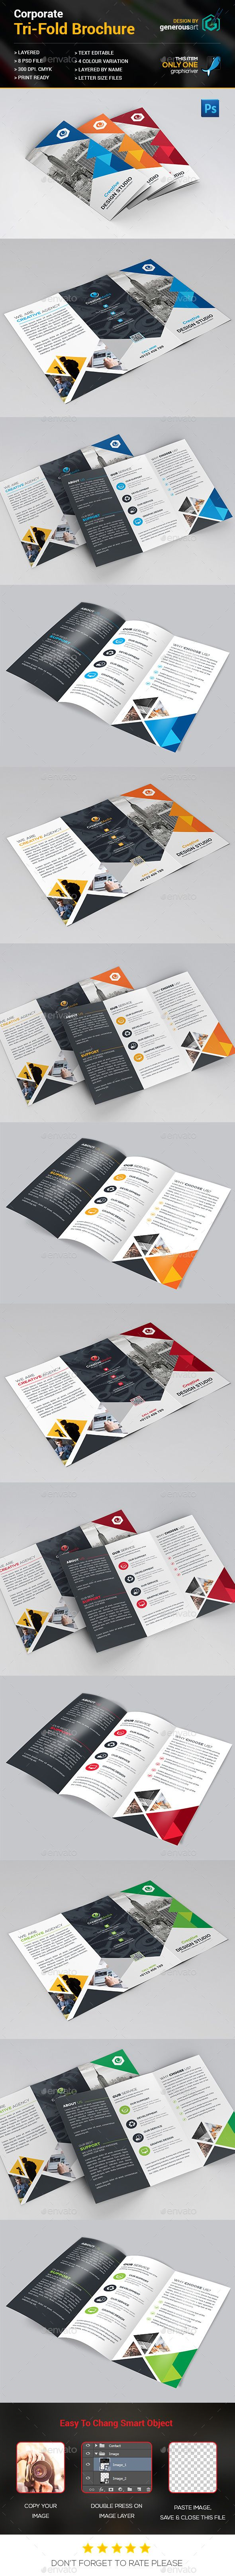 Modern Tri-Fold Brochure Template PSD. Download here: http://graphicriver.net/item/modern-trifold-brochure/15076382?ref=ksioks